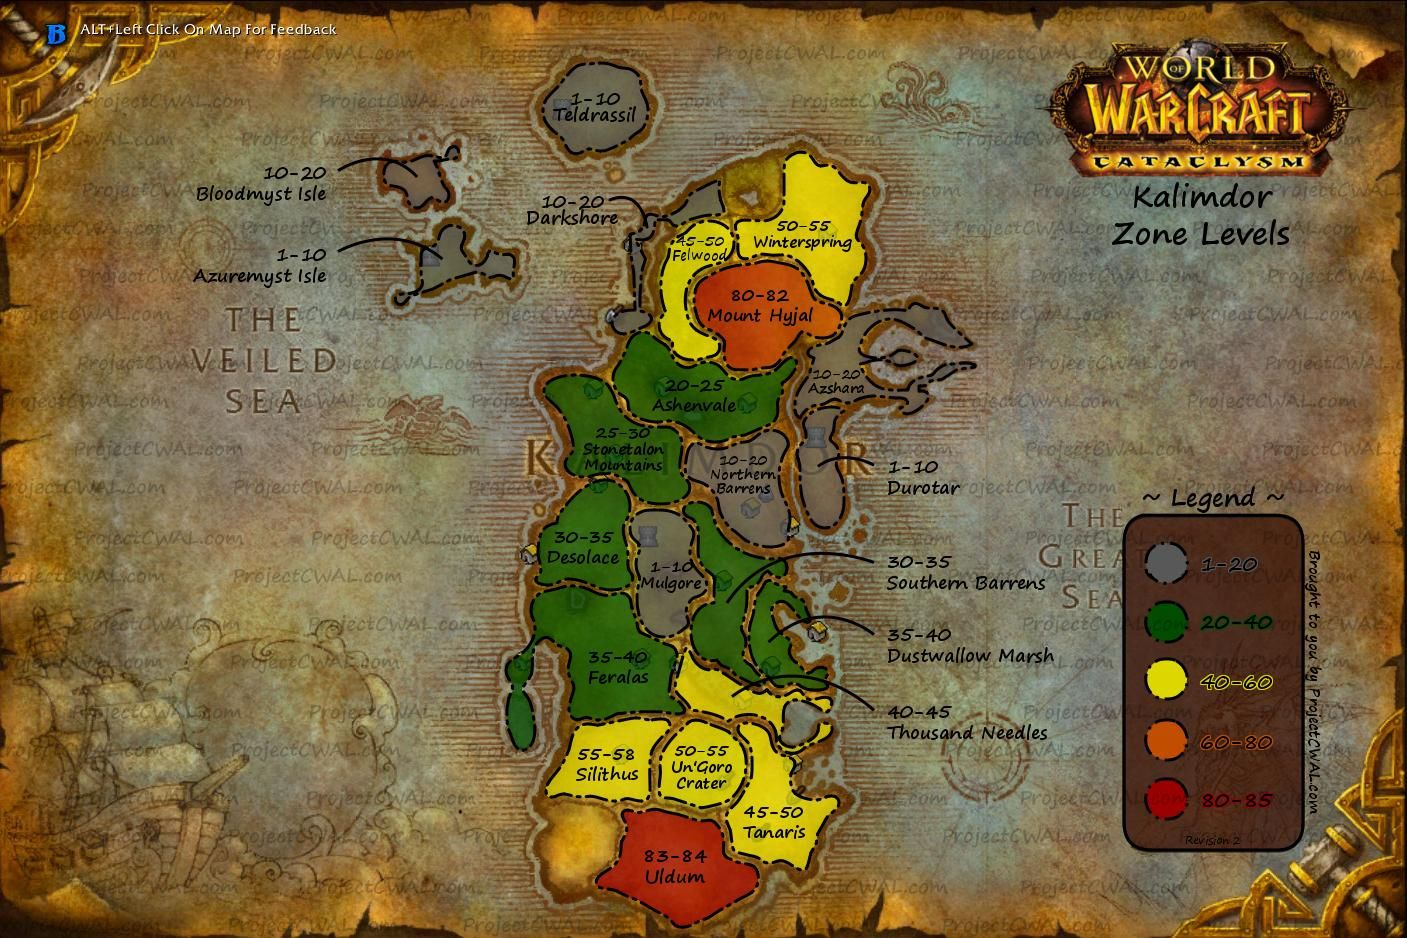 Wow level zone map awesome world of warcraft horde images online wow level zone map awesome world of warcraft horde images online gumiabroncs Images